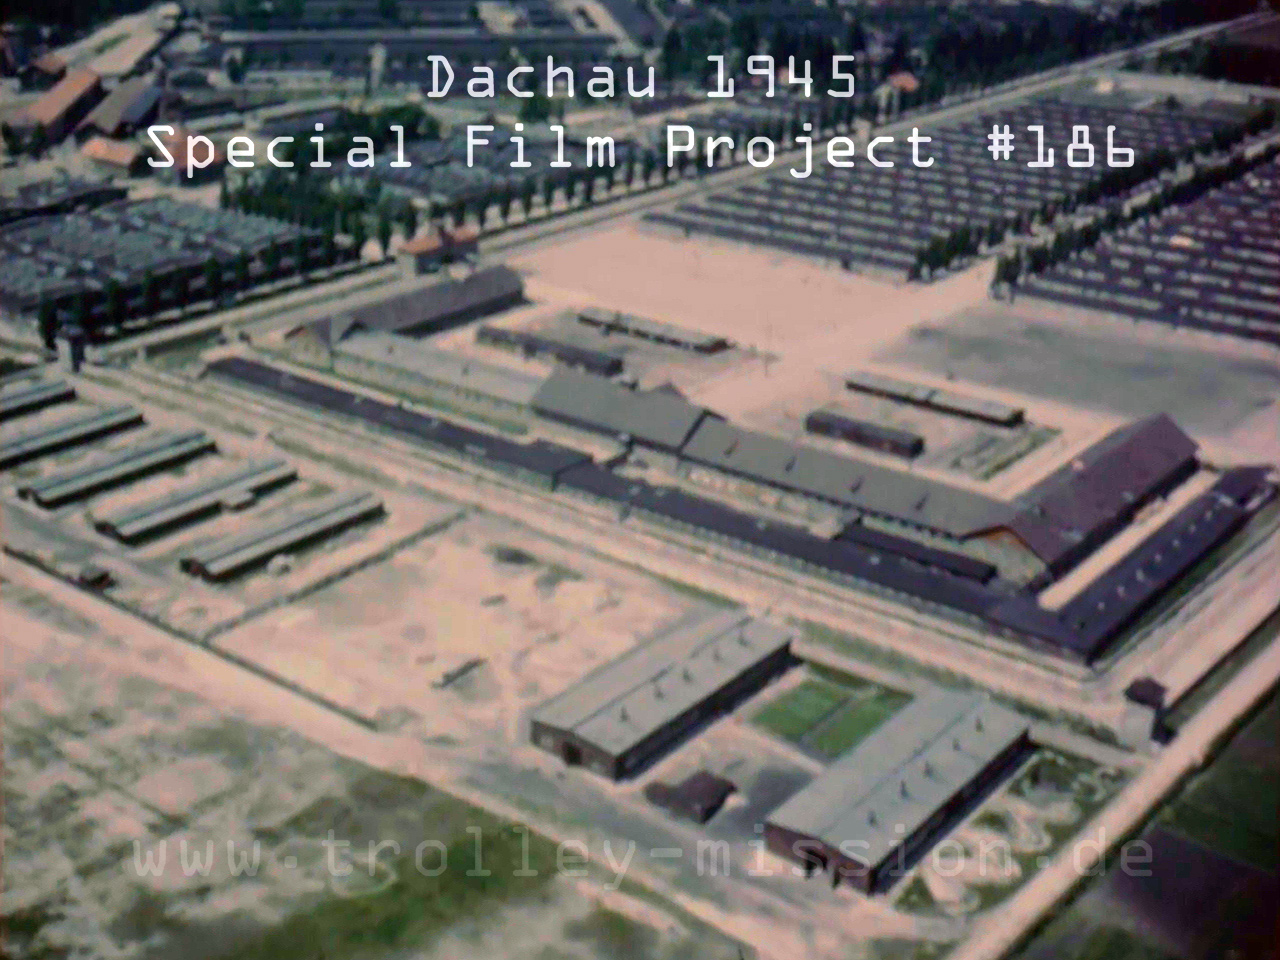 Low level flight video showing the Dachau Concentration Camp, Germany, at the end of the European War (Second World War) 1945